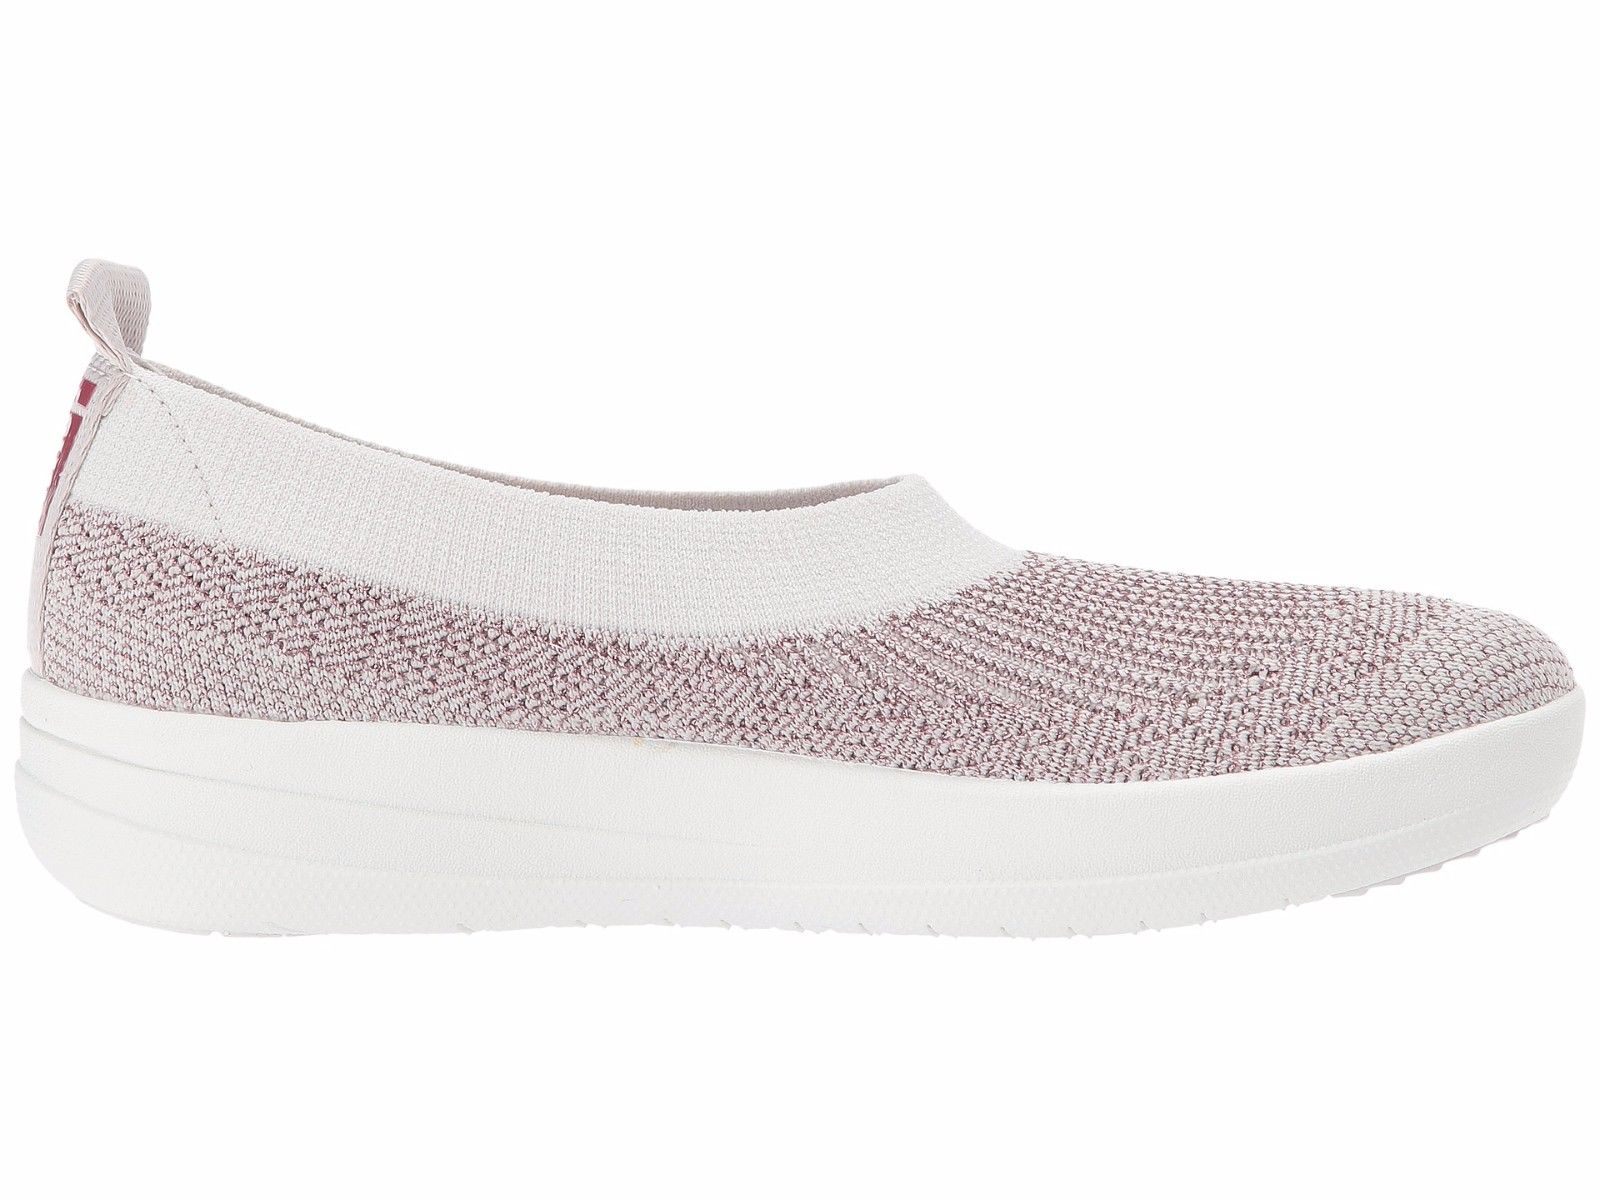 Fitflop Uberknit Slip-on Ballerina J81-507 (Stone / Rose Gold)